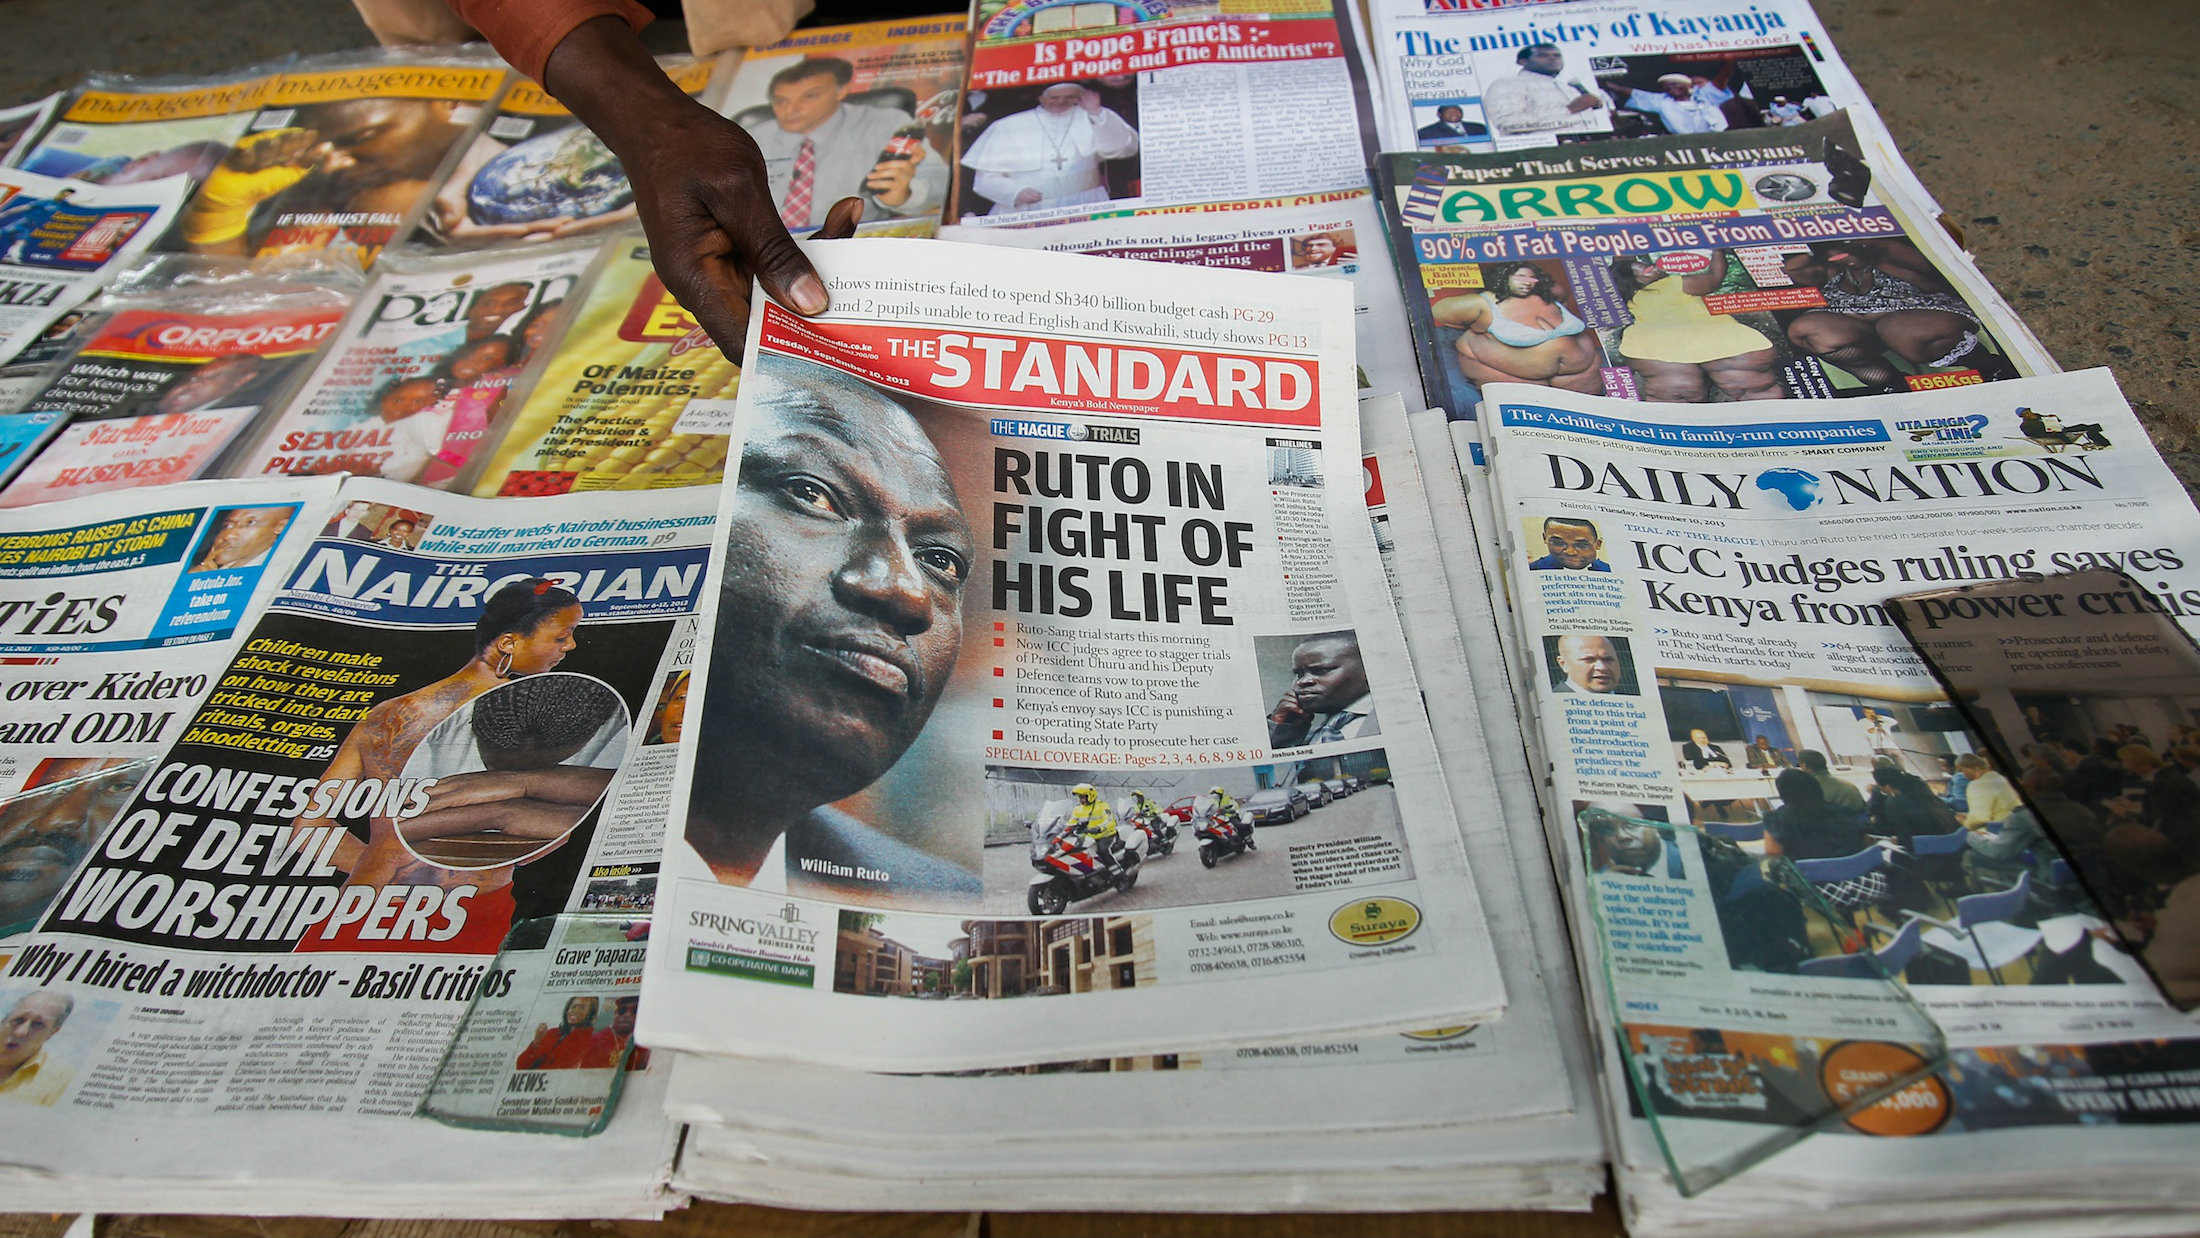 Kenya's largest daily by circulation has fired a journalist after he published an editorial critical of the president.